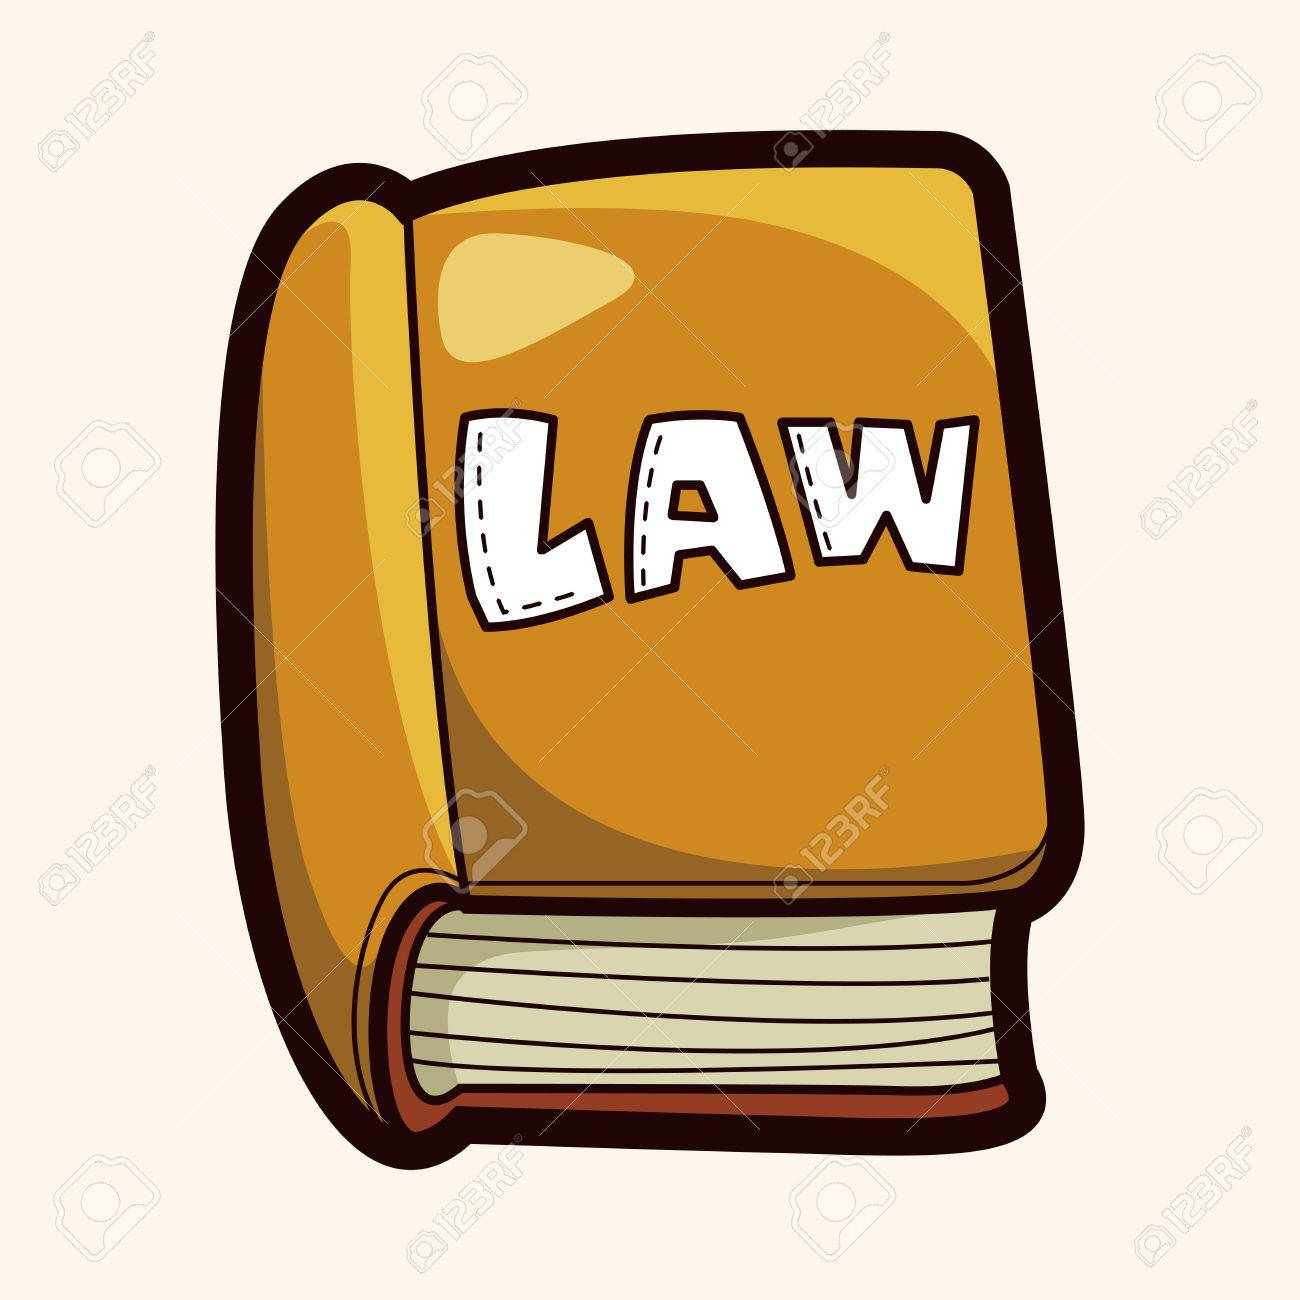 Collection of Law clipart.